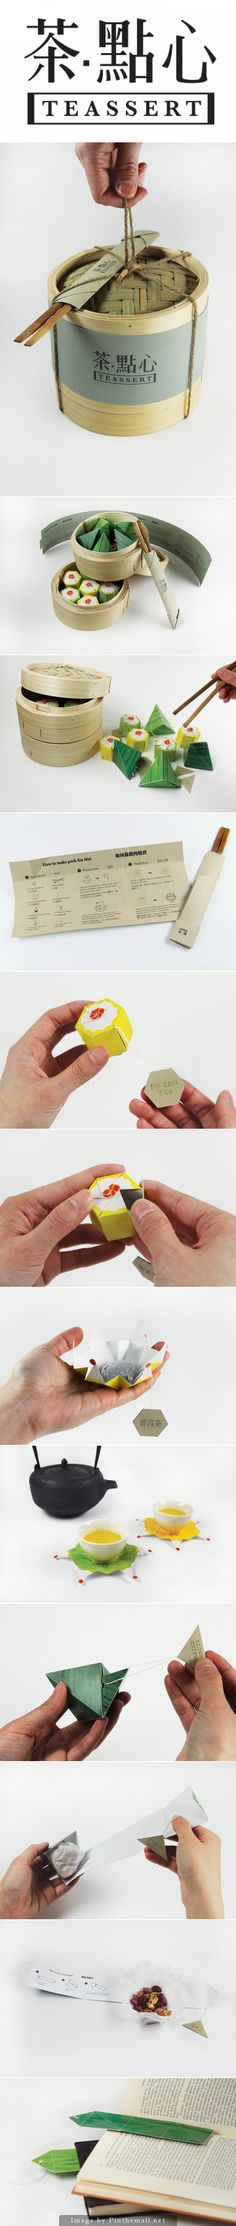 Too pretty not to share the entire Teassert #packaging pin PD - created via https://www.behance.net/gallery/Teassert/15883085